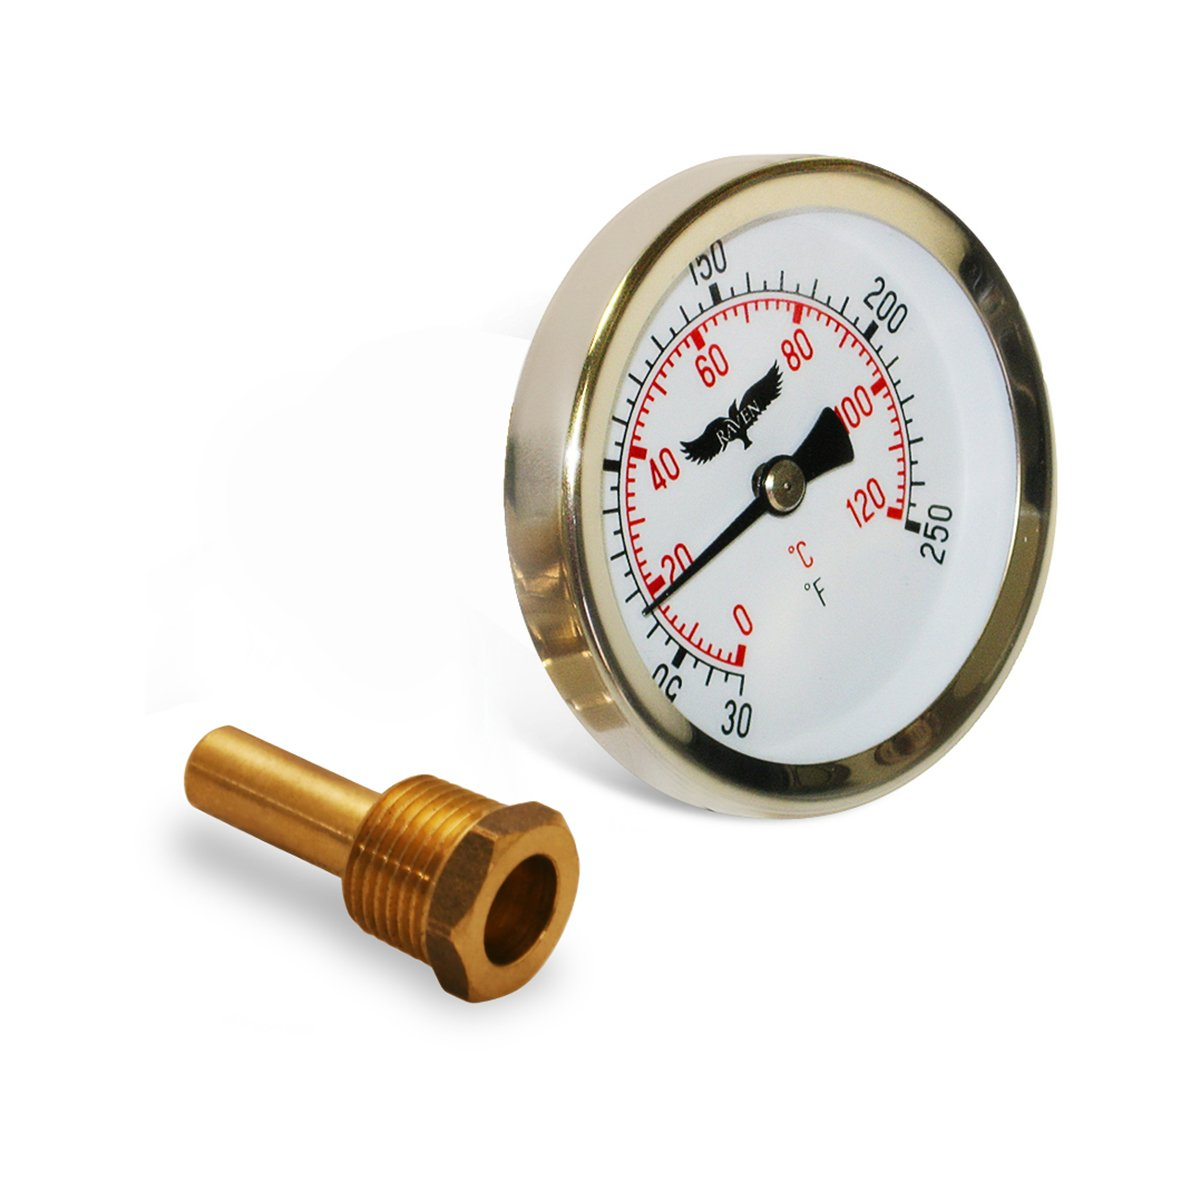 Raven R1516-NL Hot Water Thermometer Lead Free Circular Dial, Bi-Metallic Element, Aluminum Stem & Case Material with Removable IPS Well